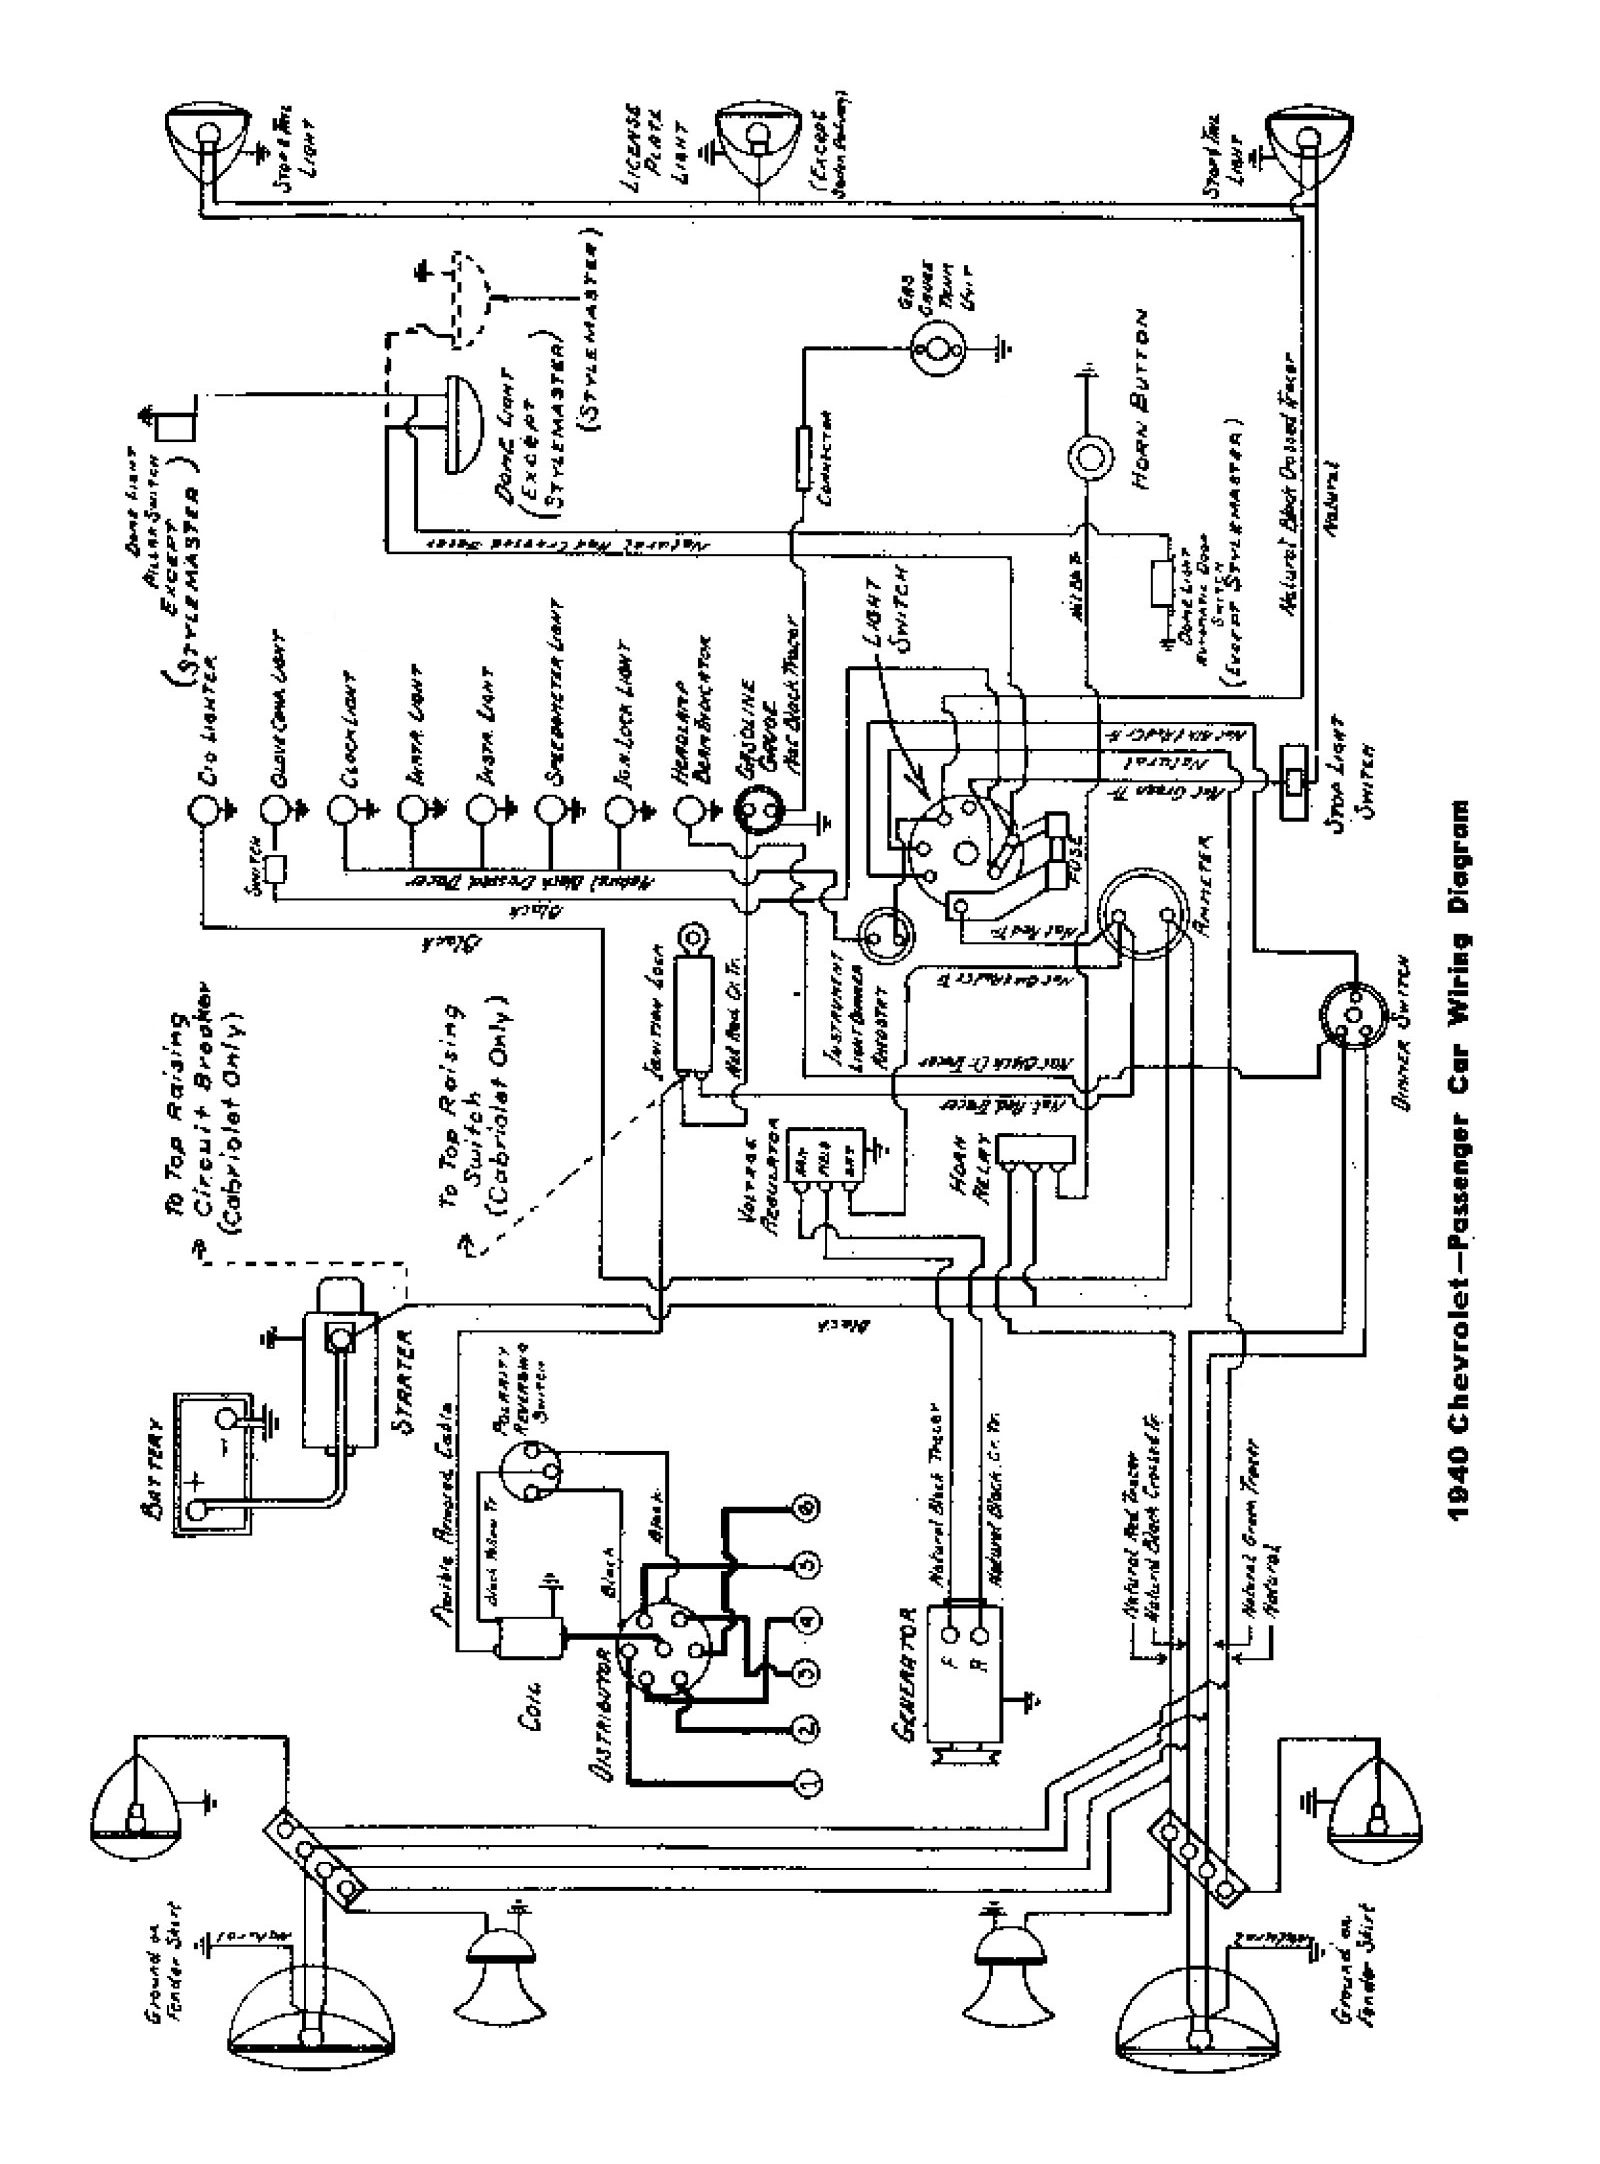 [EF_6302] Wiring Diagram For 1940 Chevy Business Coupe Get